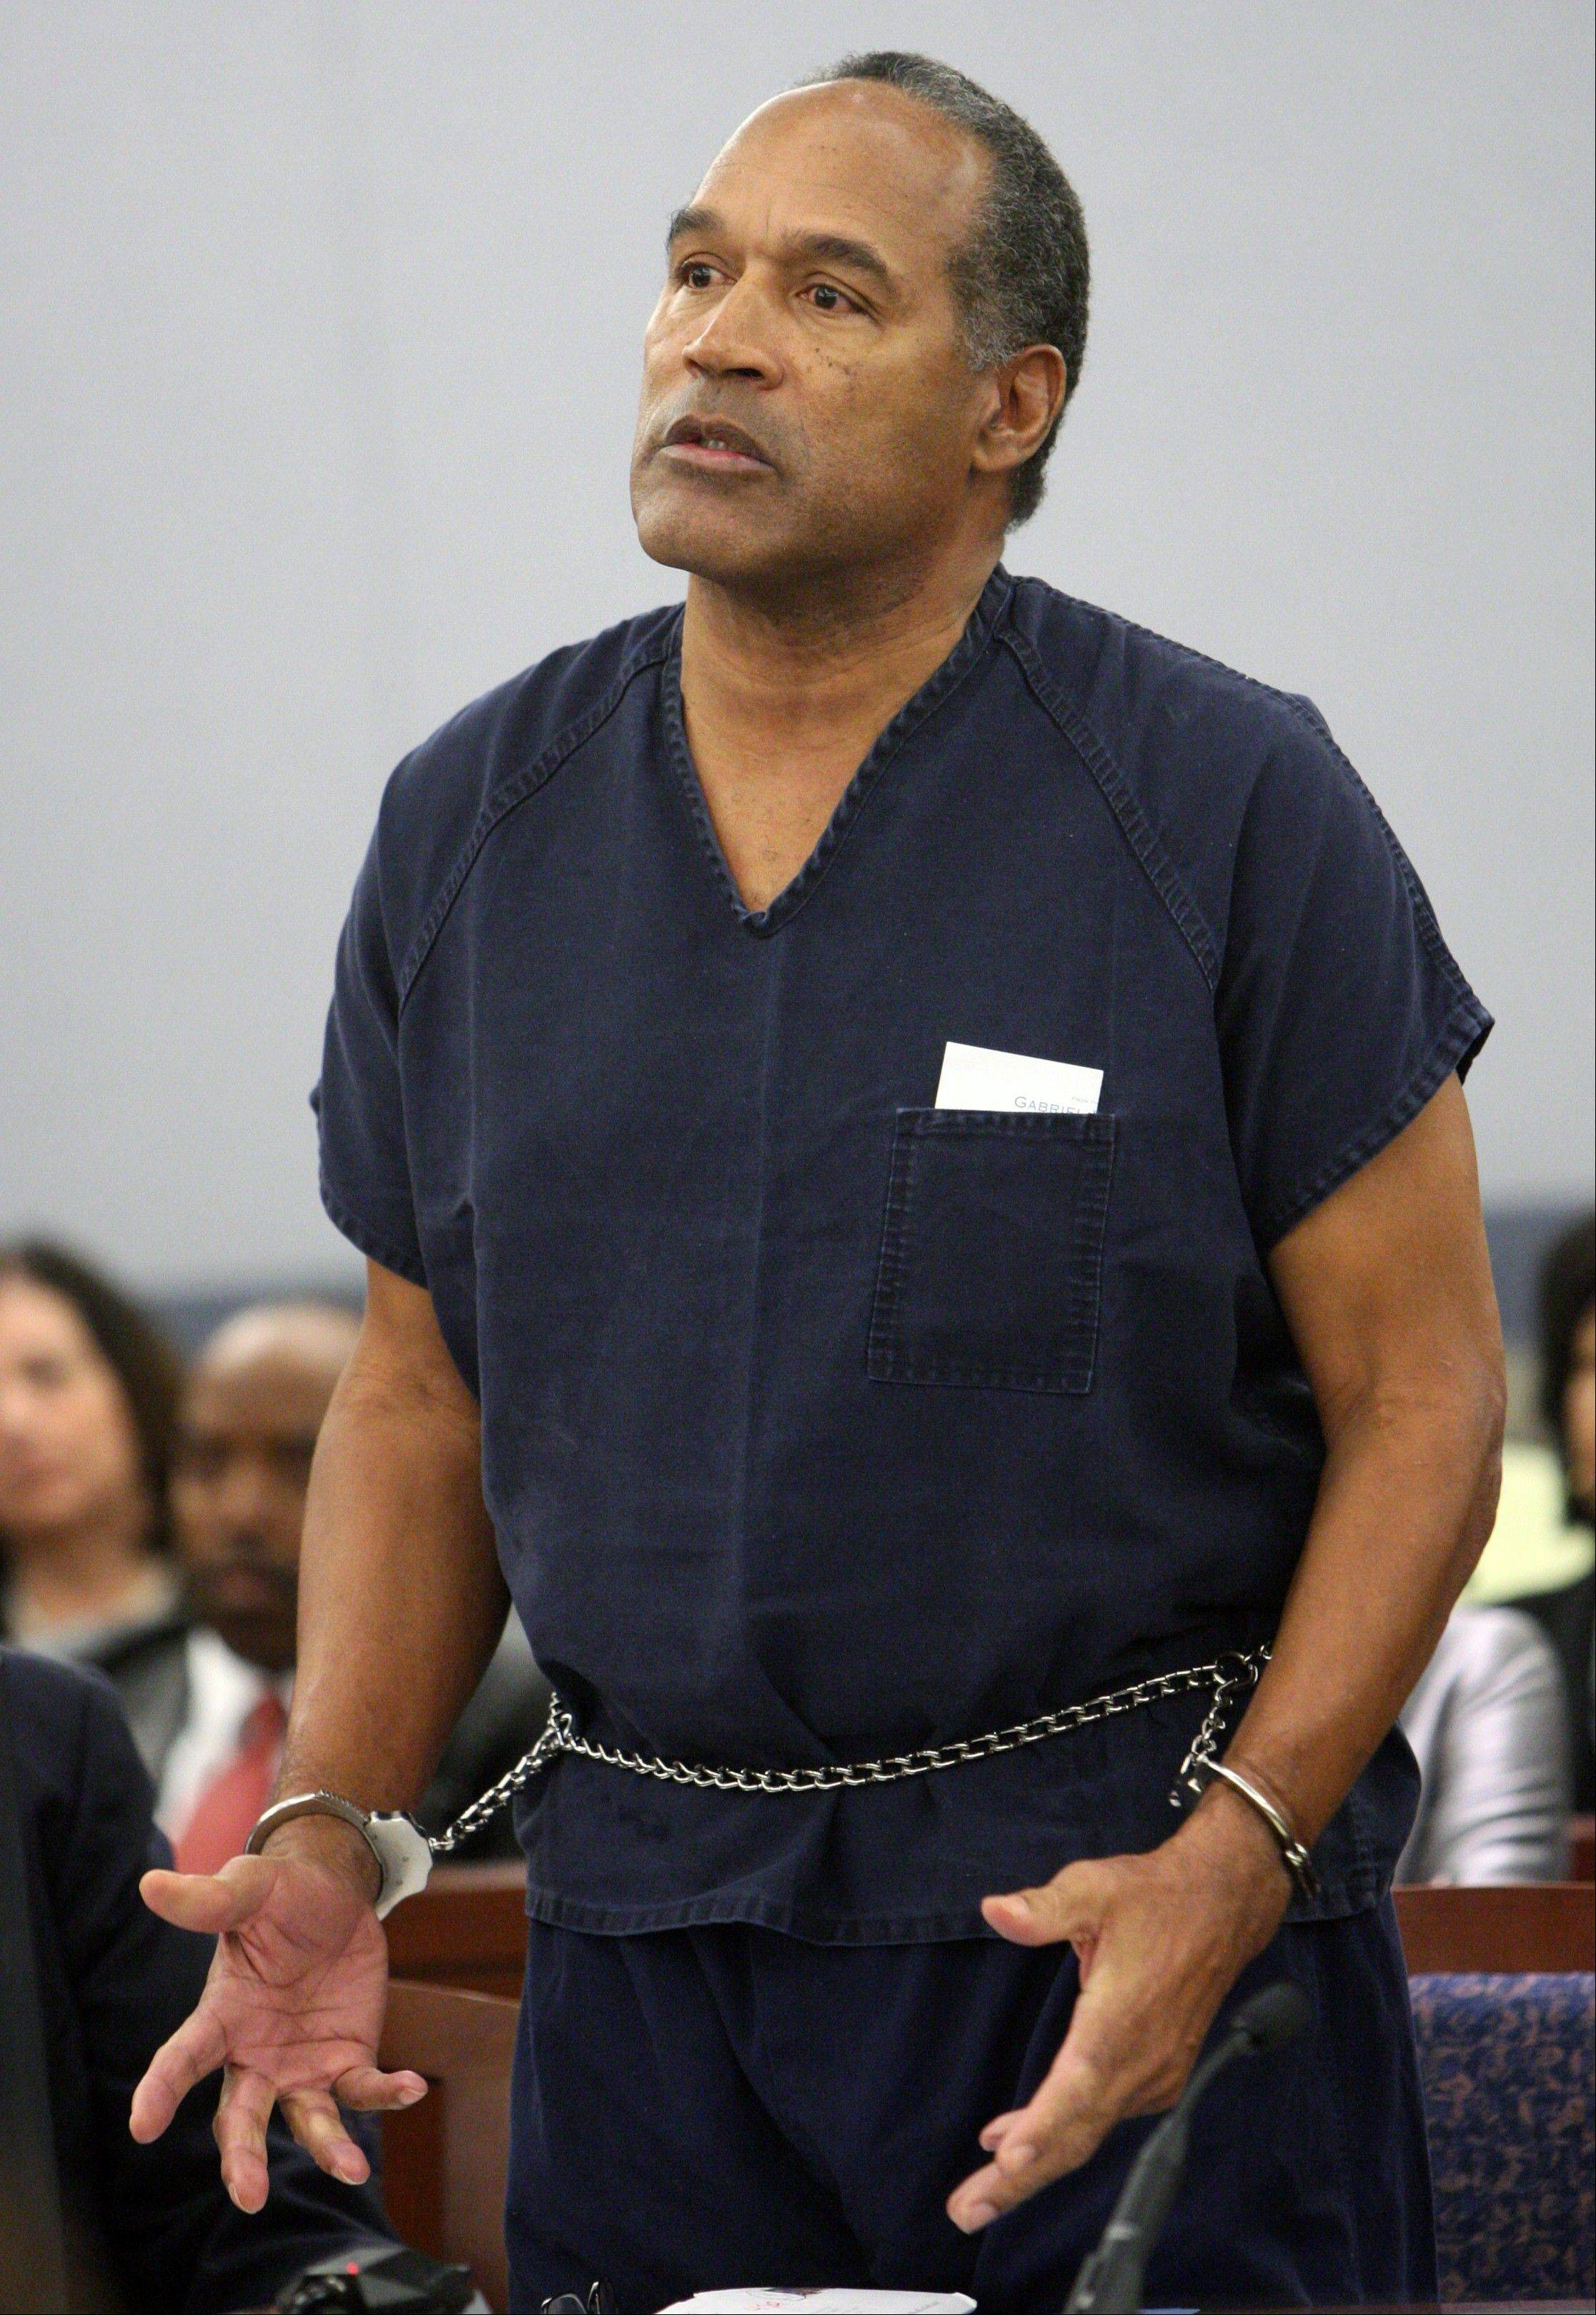 In this Dec. 5, 2008 file photo, O.J. Simpson speaks during his sentencing at the Clark County Regional Justice Center courtroom in Las Vegas. Simpson is heading back to the Las Vegas courthouse where he was convicted of leading five men in an armed sports memorabilia heist to ask a judge for a new trial because, he says, the Florida lawyer he paid nearly $700,000 botched his defense. The return of O.J. Simpson to a Las Vegas courtroom next Monday, May, 13, will remind Americans of a tragedy that became a national obsession and in the process changed the country�s attitude toward the justice system, the media and celebrity.